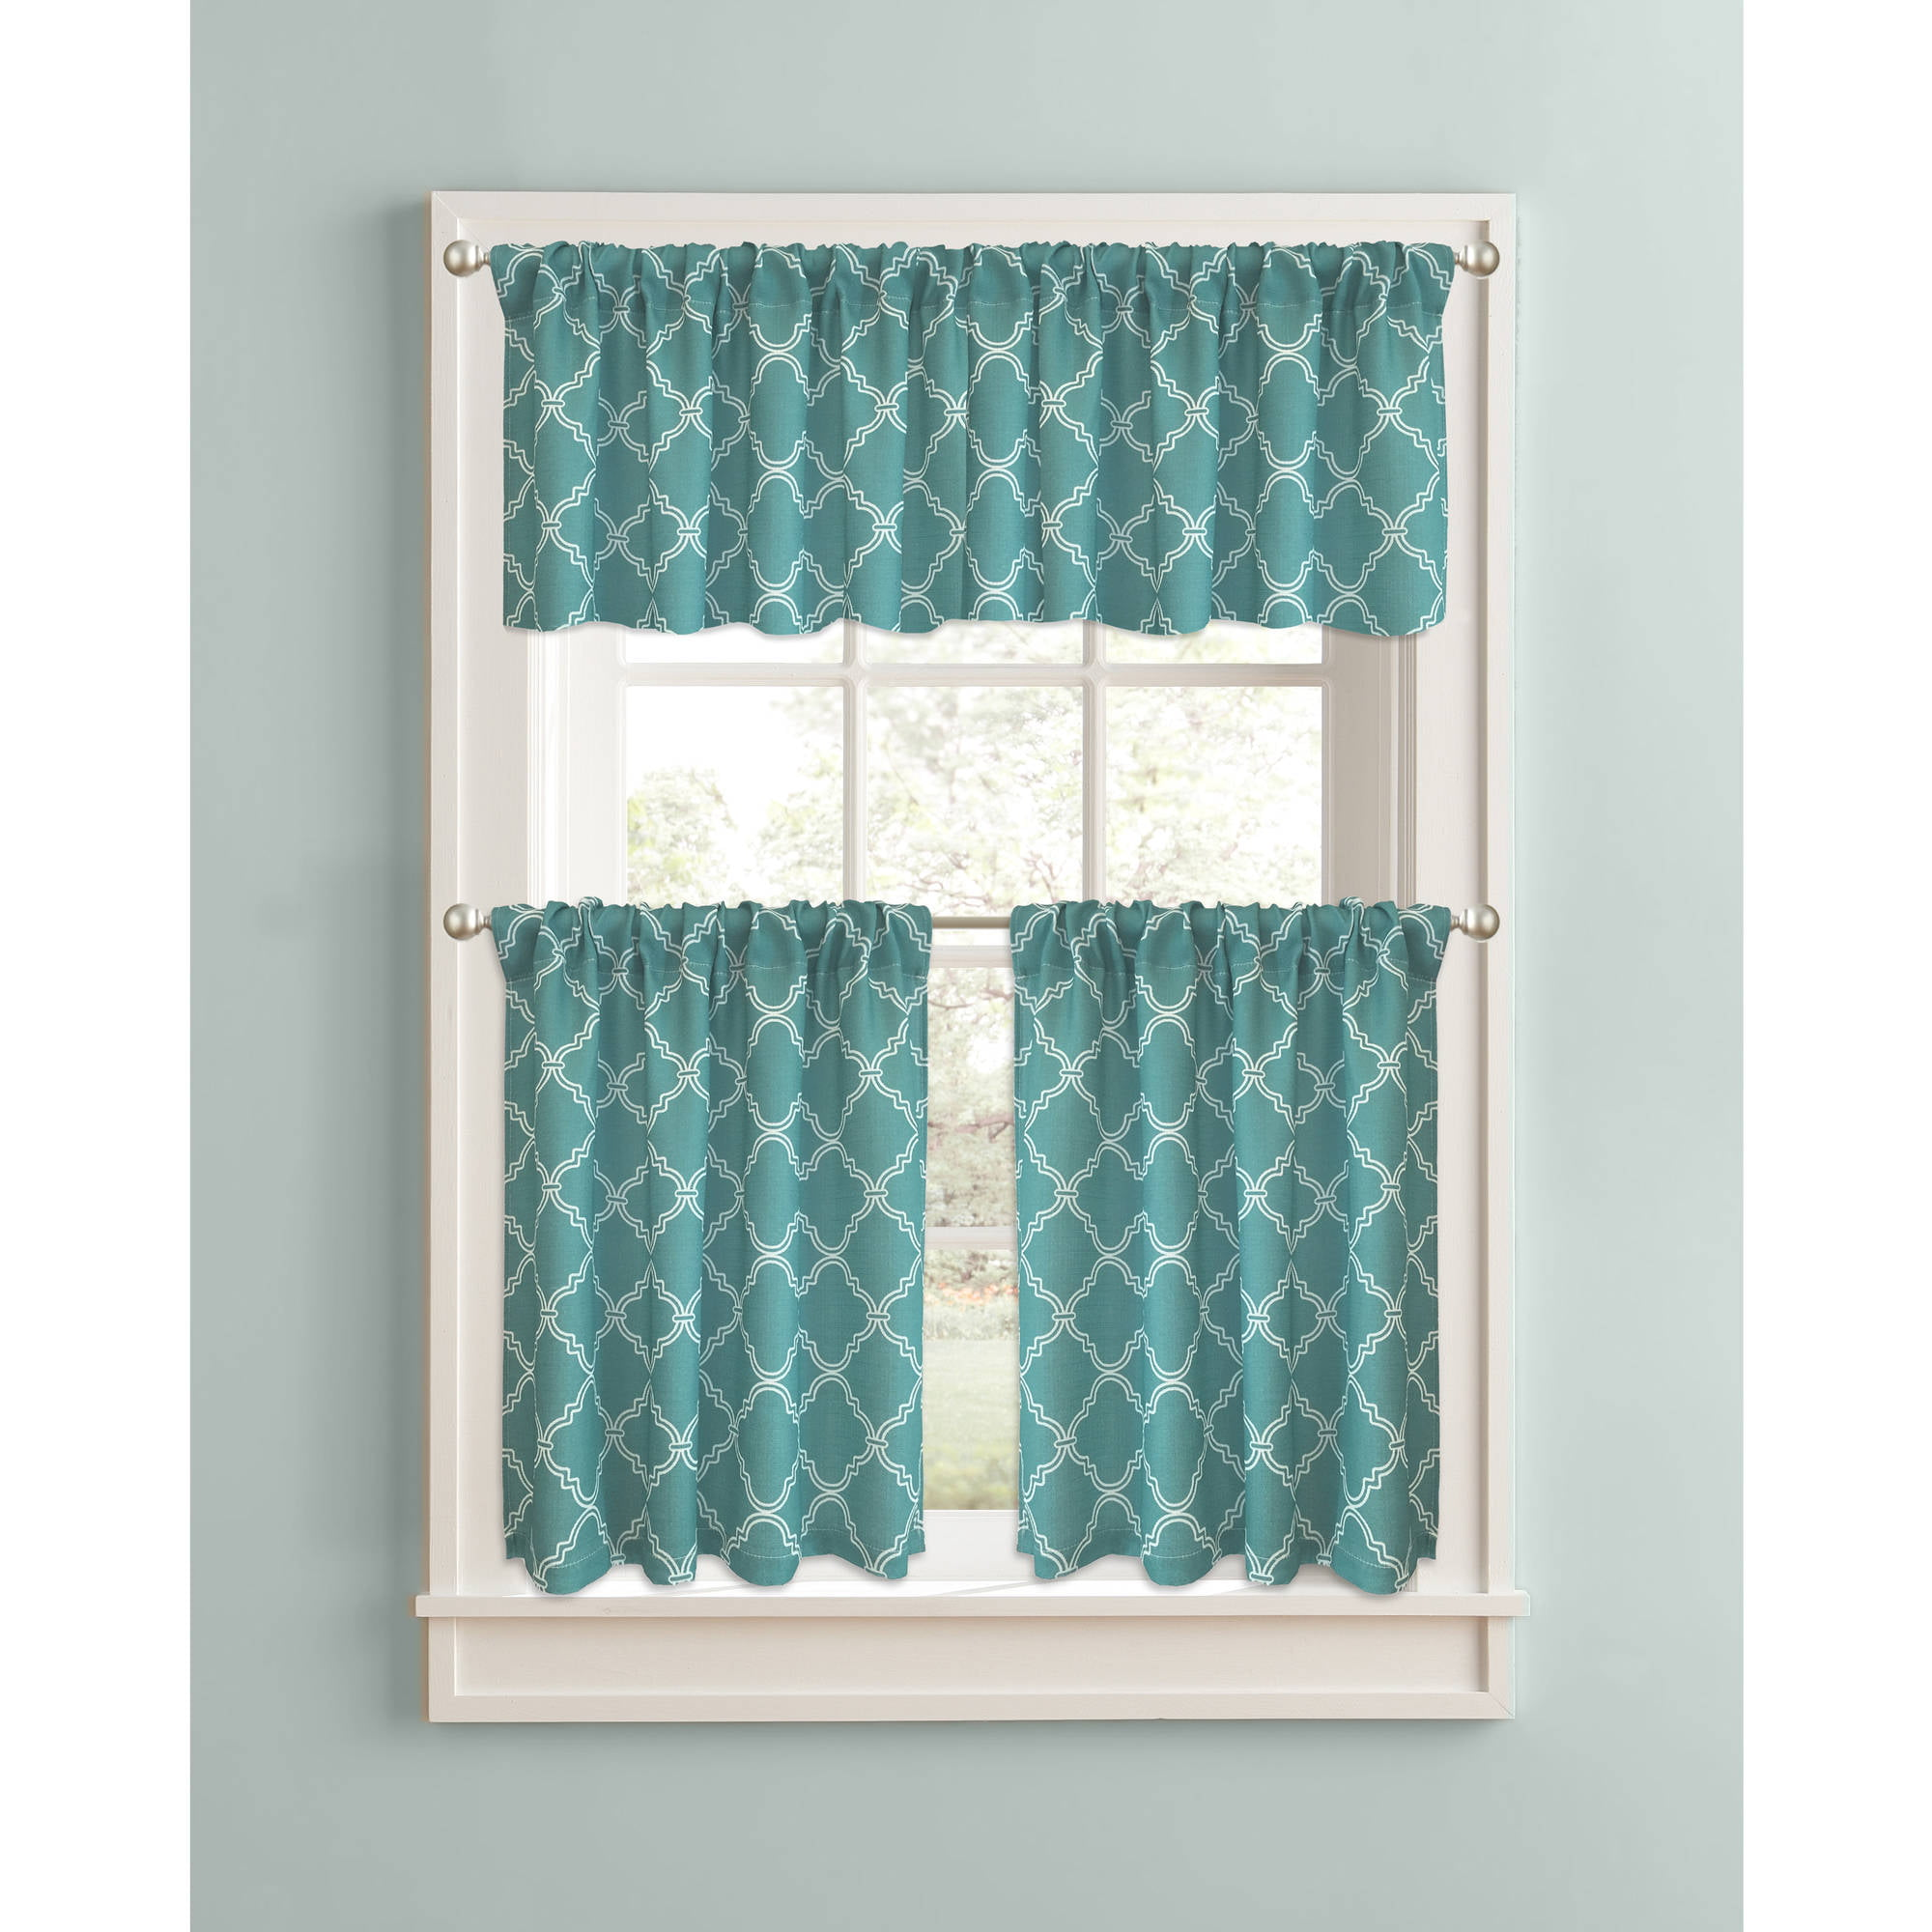 Better Homes And Gardens Trellis Kitchen Curtains, Set Of 2   Walmart.com